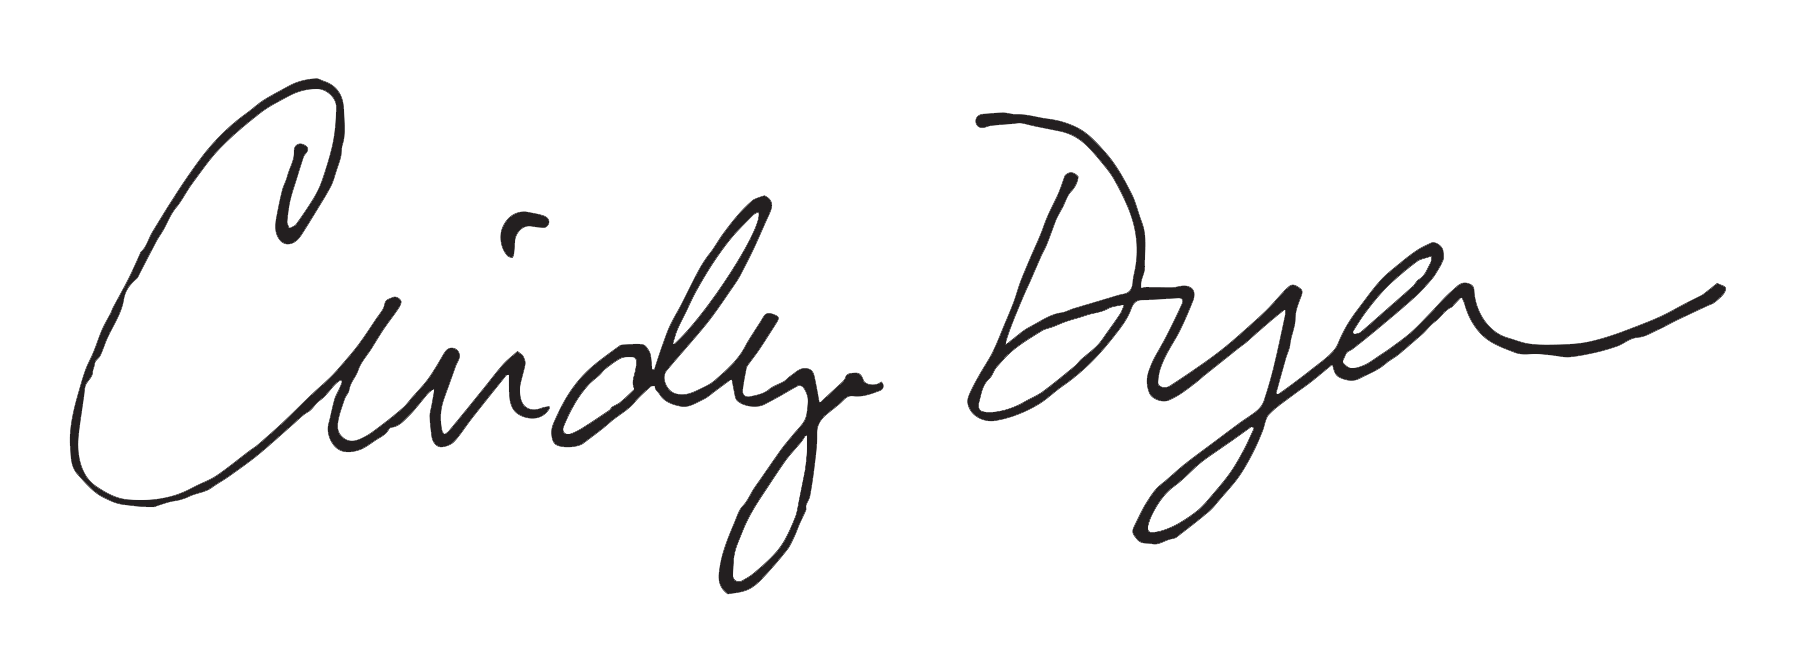 Cindy Dyer Signature